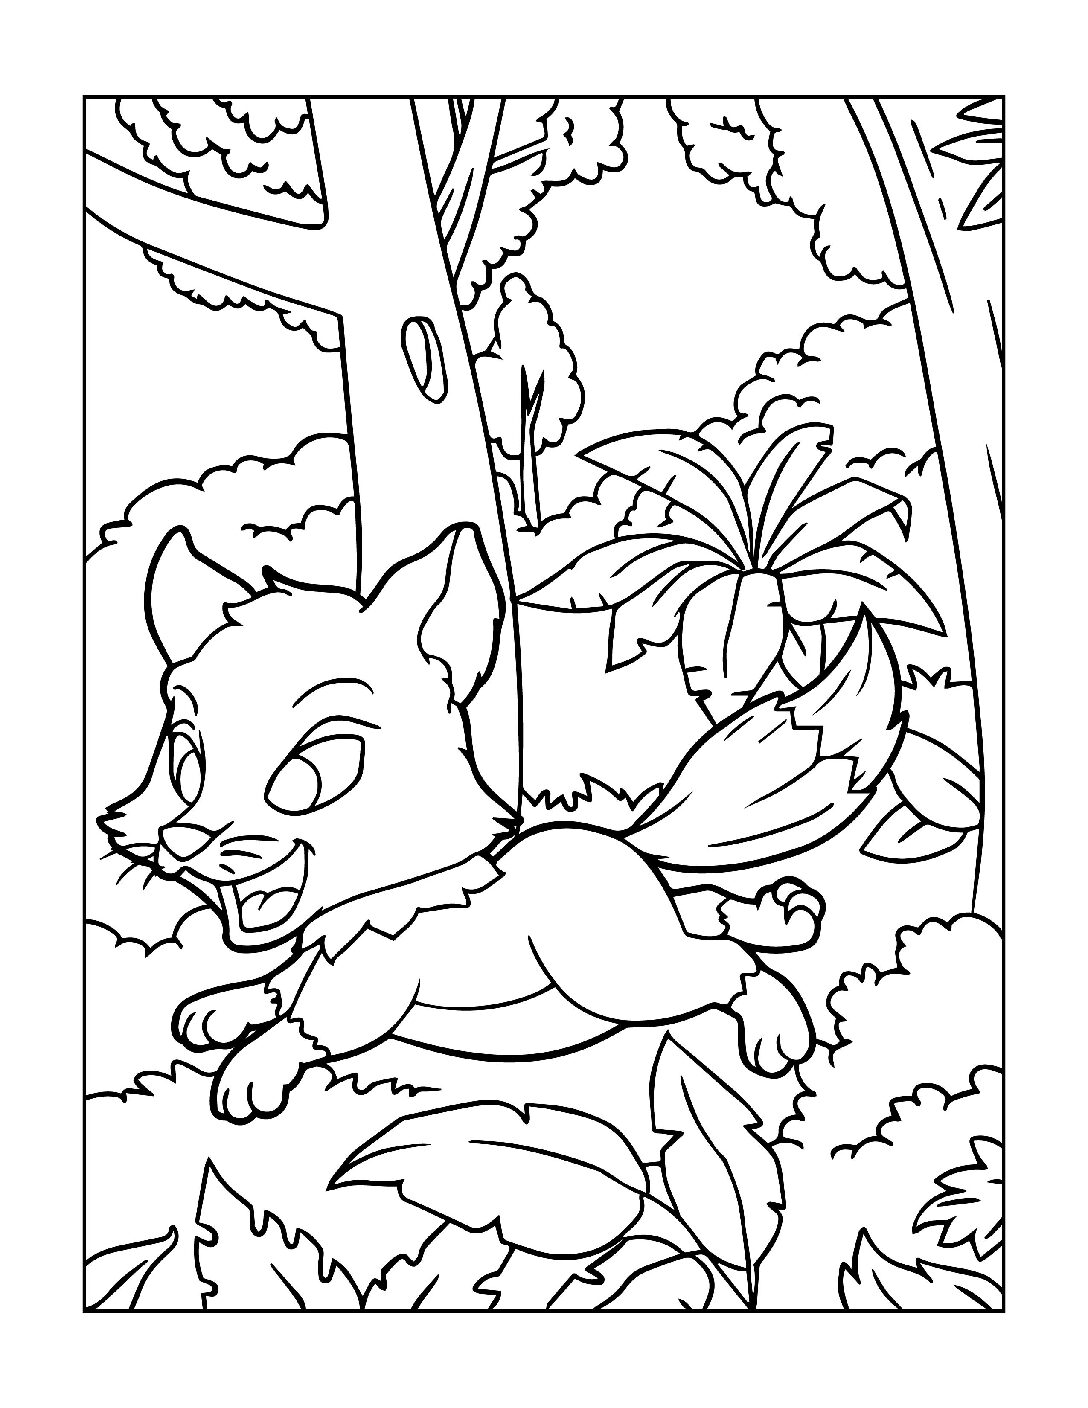 Coloring-Pages-Zoo-Animals-13-01-1-pdf Free Printable  Zoo Animals Colouring Pages